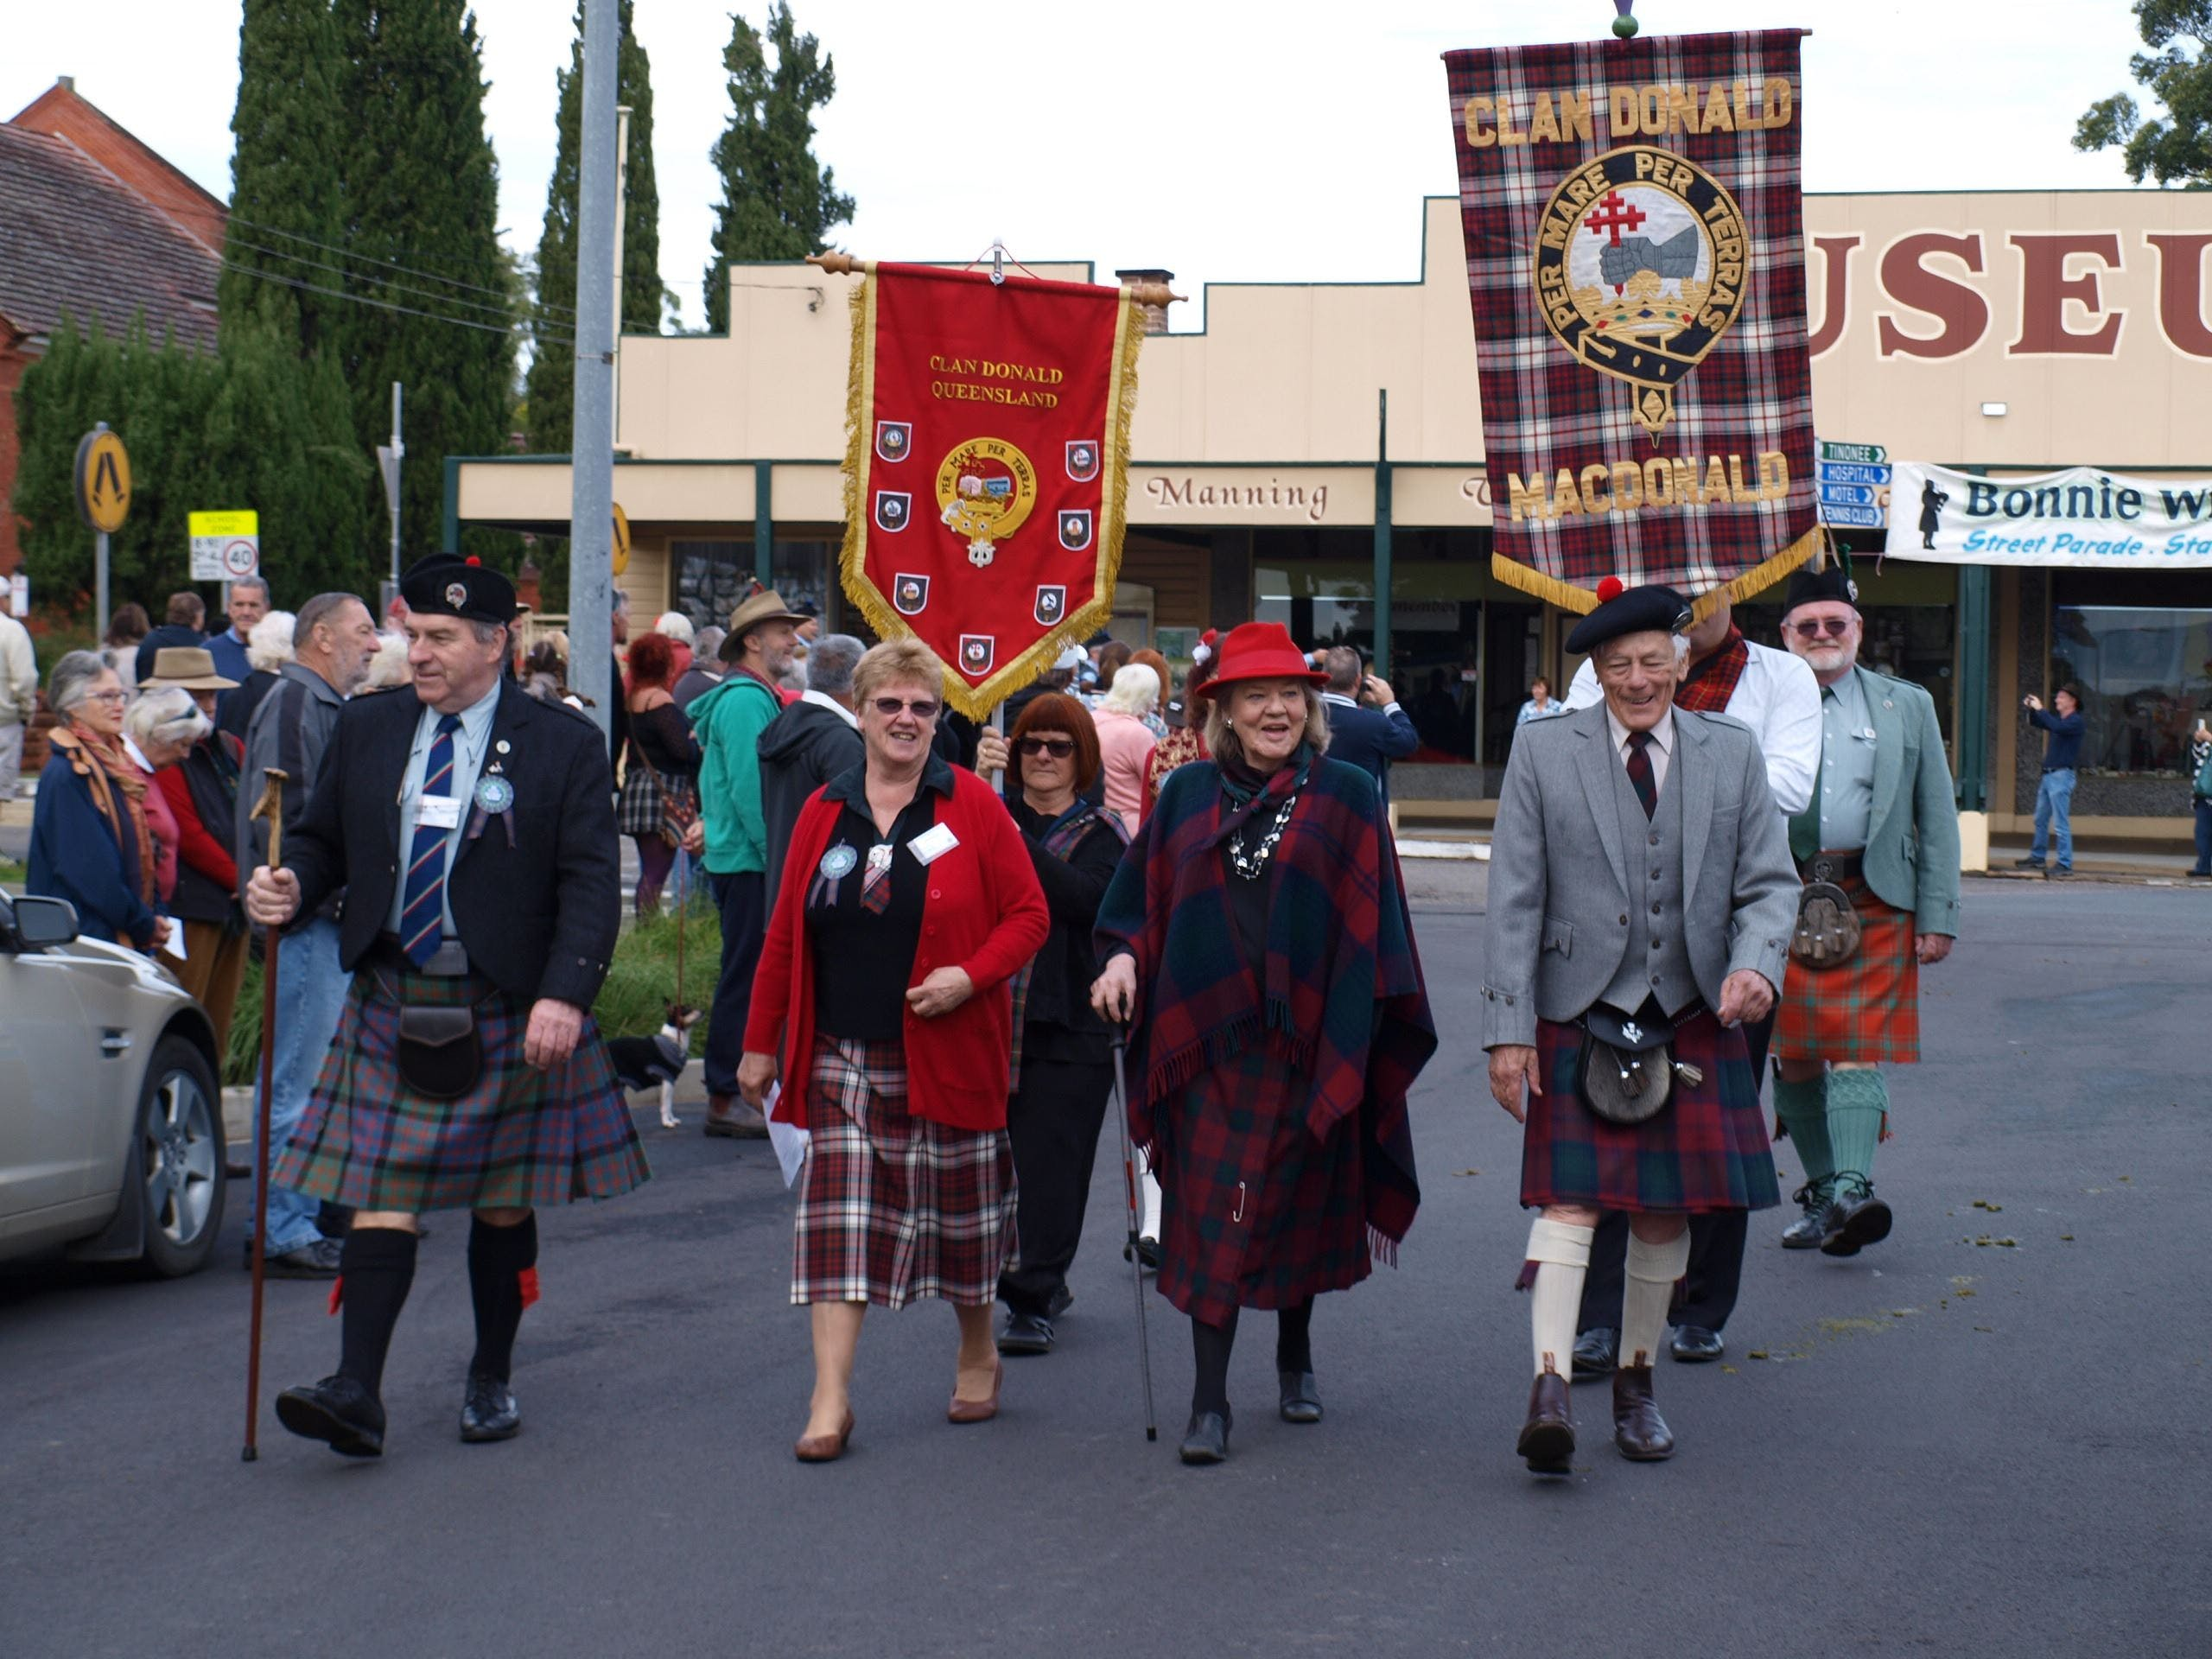 Bonnie Wingham Scottish Festival - QLD Tourism